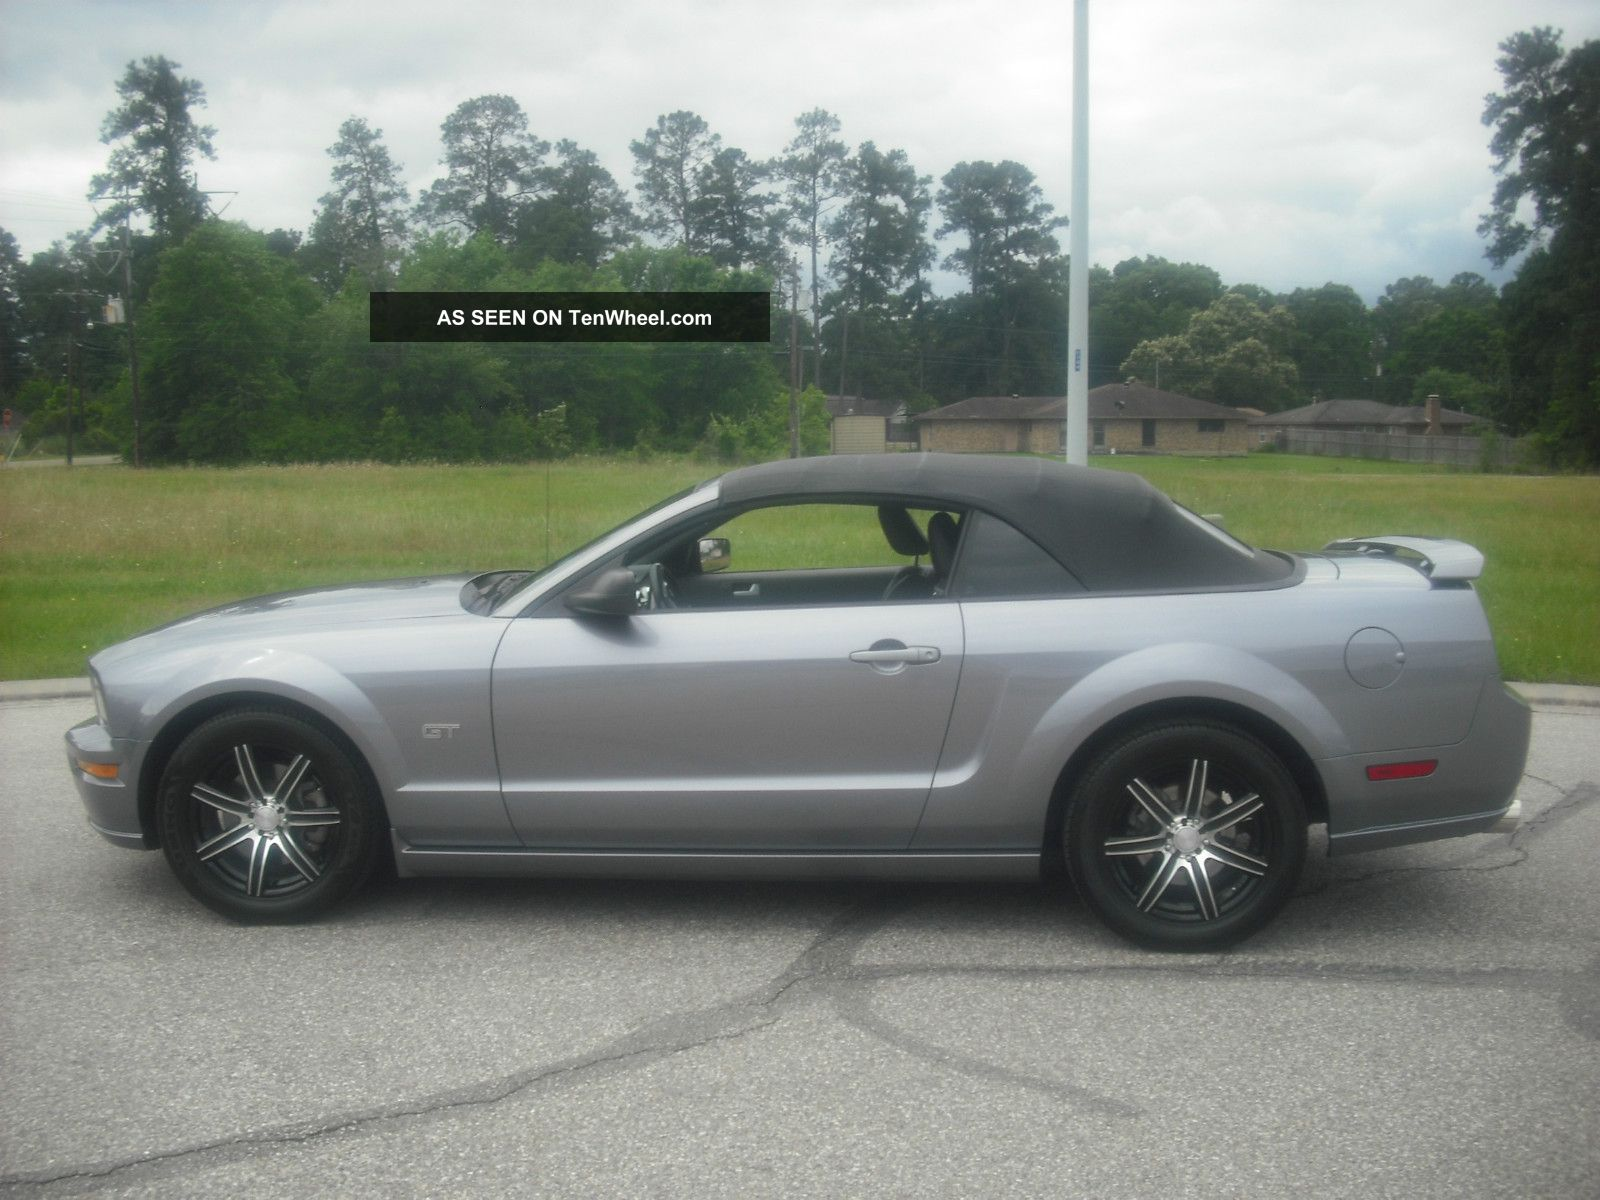 2007 ford mustang gt convertible 2 door 4 6l mustang photo. Black Bedroom Furniture Sets. Home Design Ideas